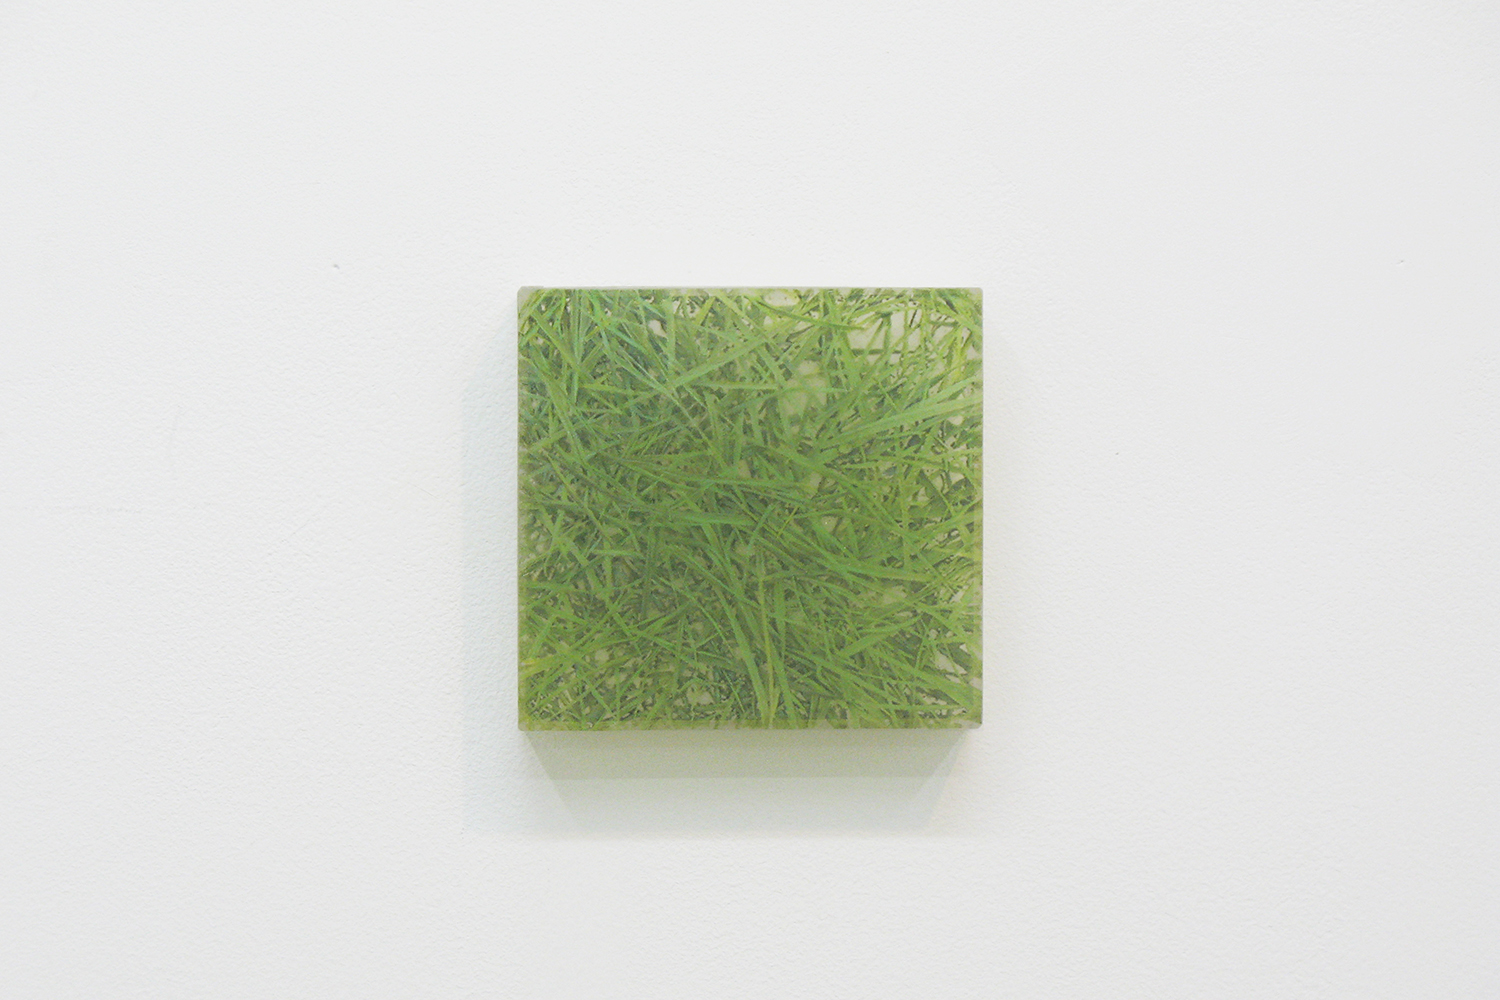 Photo painting [叢 grass 06-8],  oil on polyester resin panel and mixed media, 11.2 × 11.8 cm, 2006